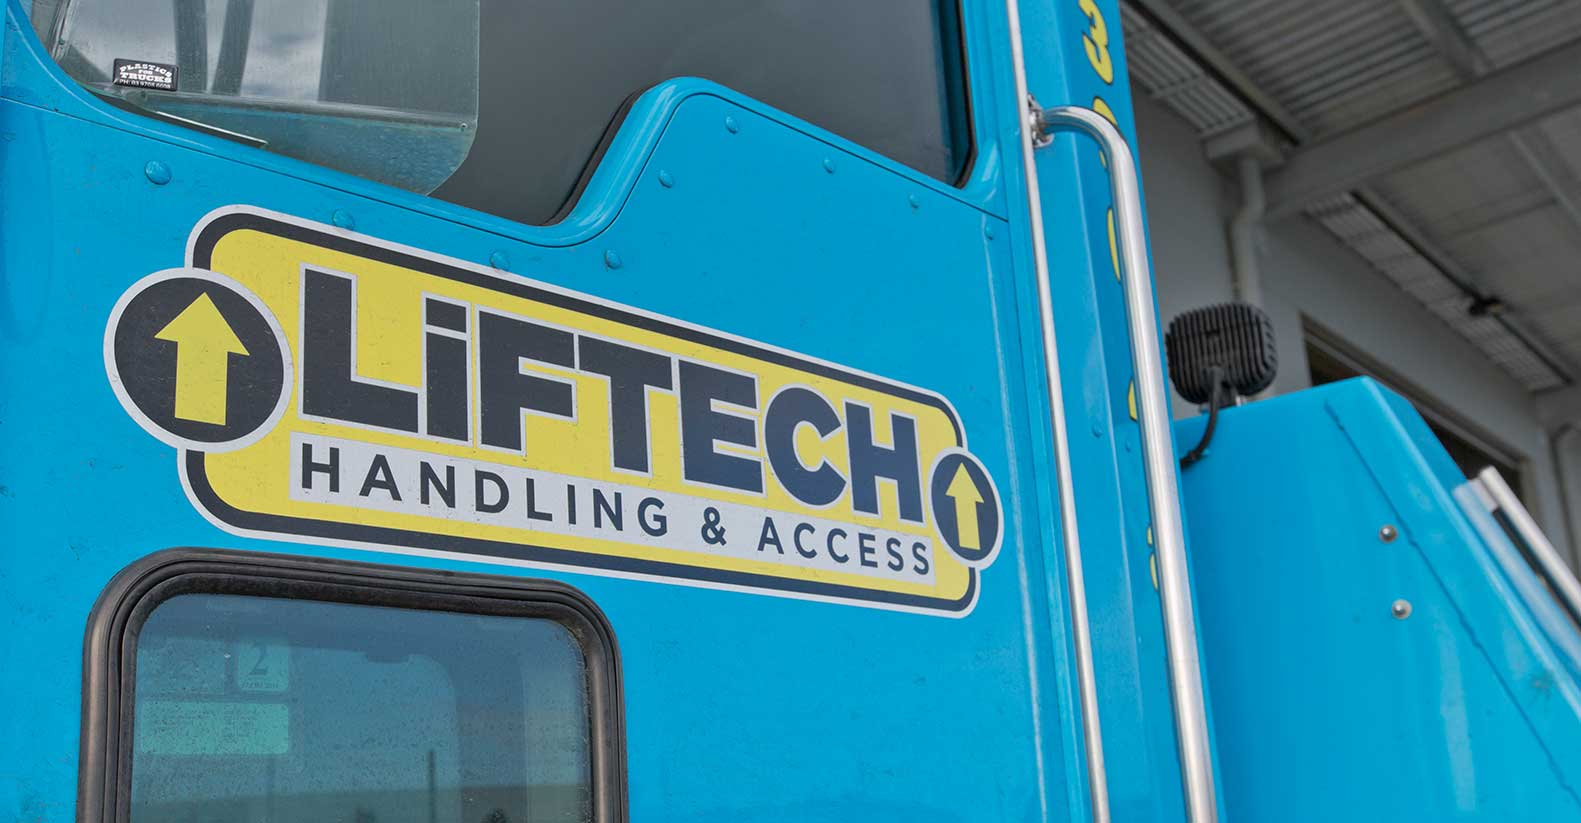 Specialised equipment by Liftech